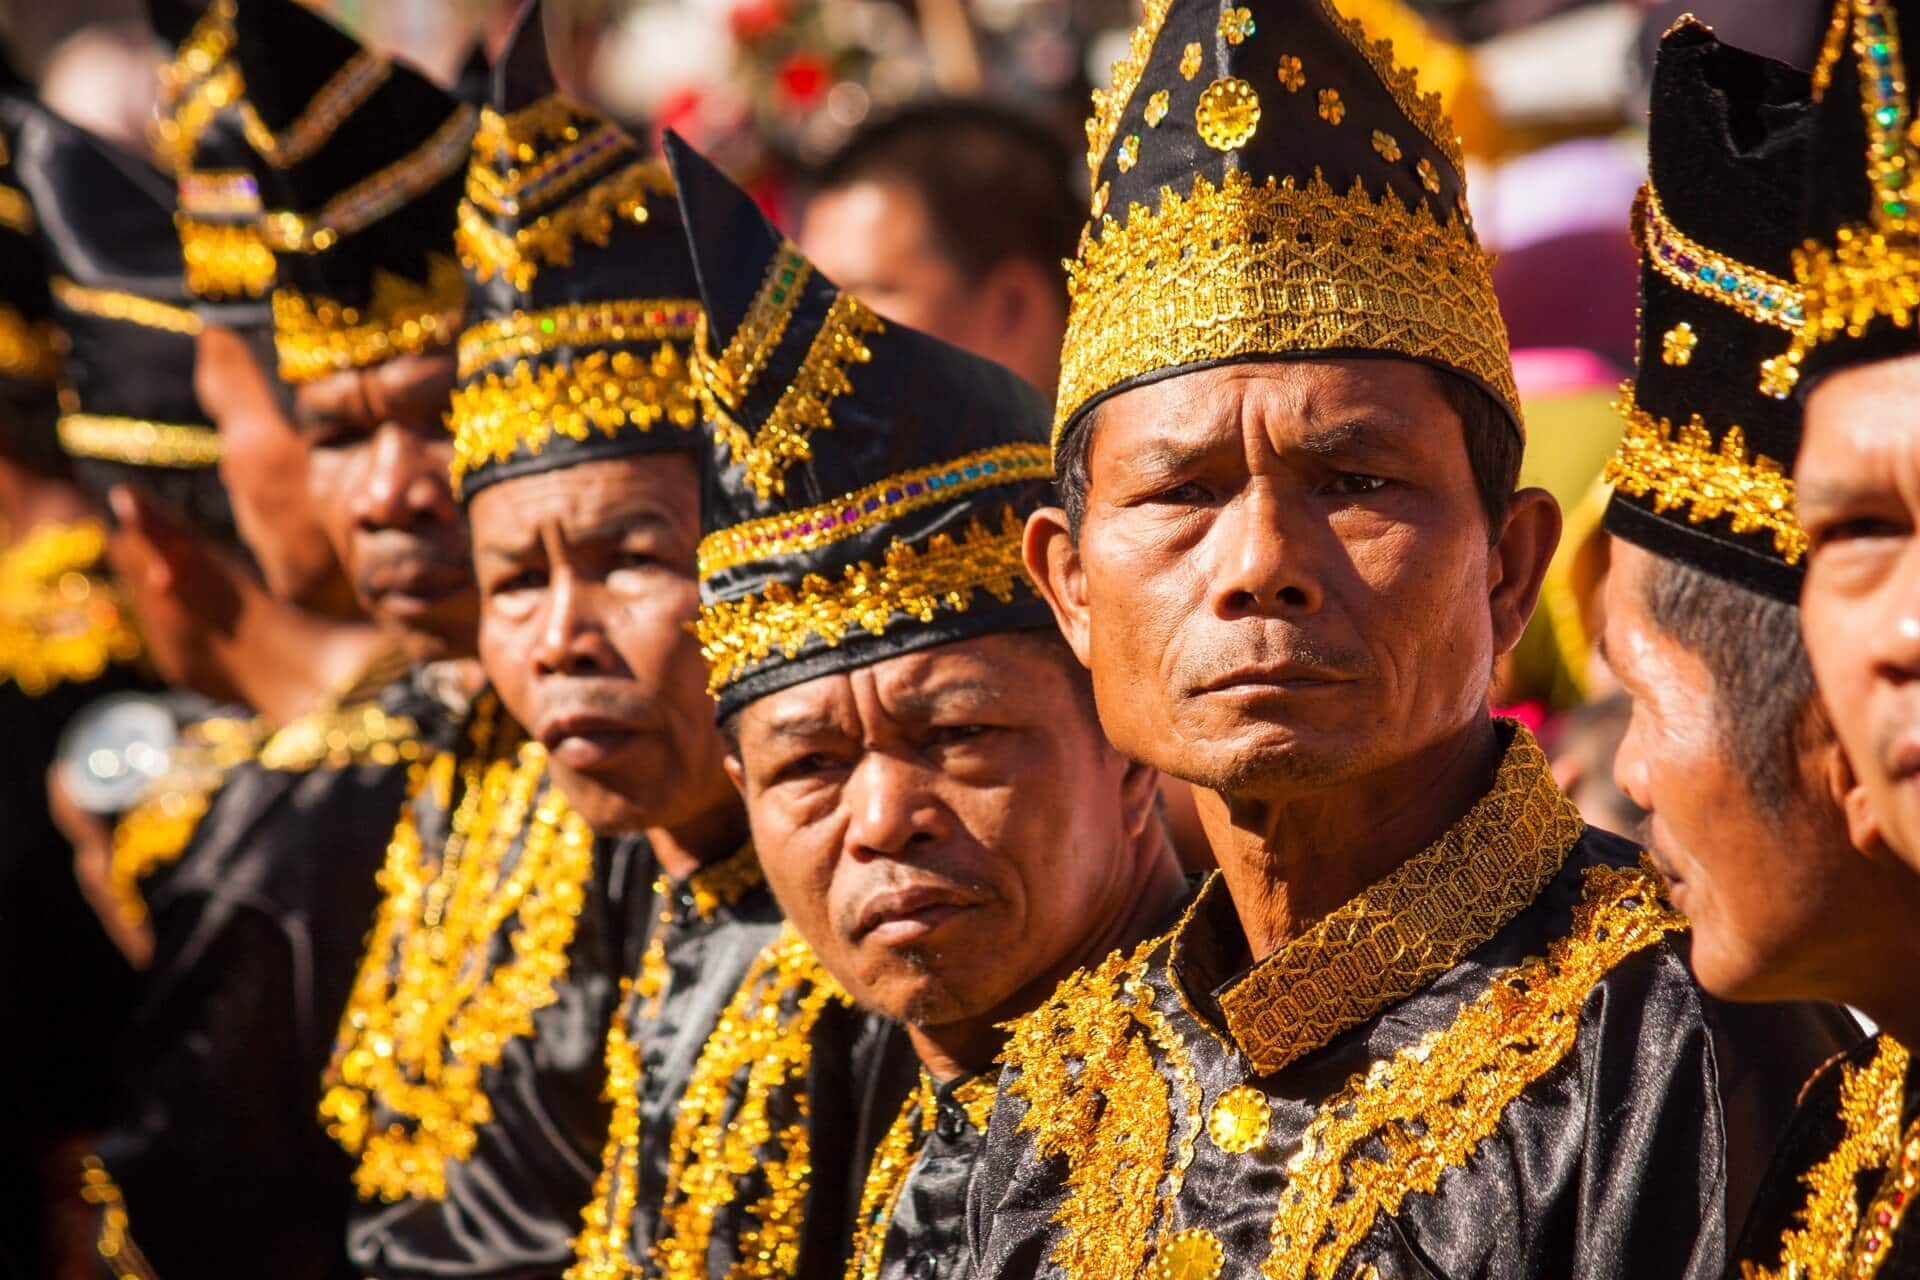 Men in traditional Kerinci attire, Kenduri Sko festival in Semurup, Jambi, Sumatra, Indonesia